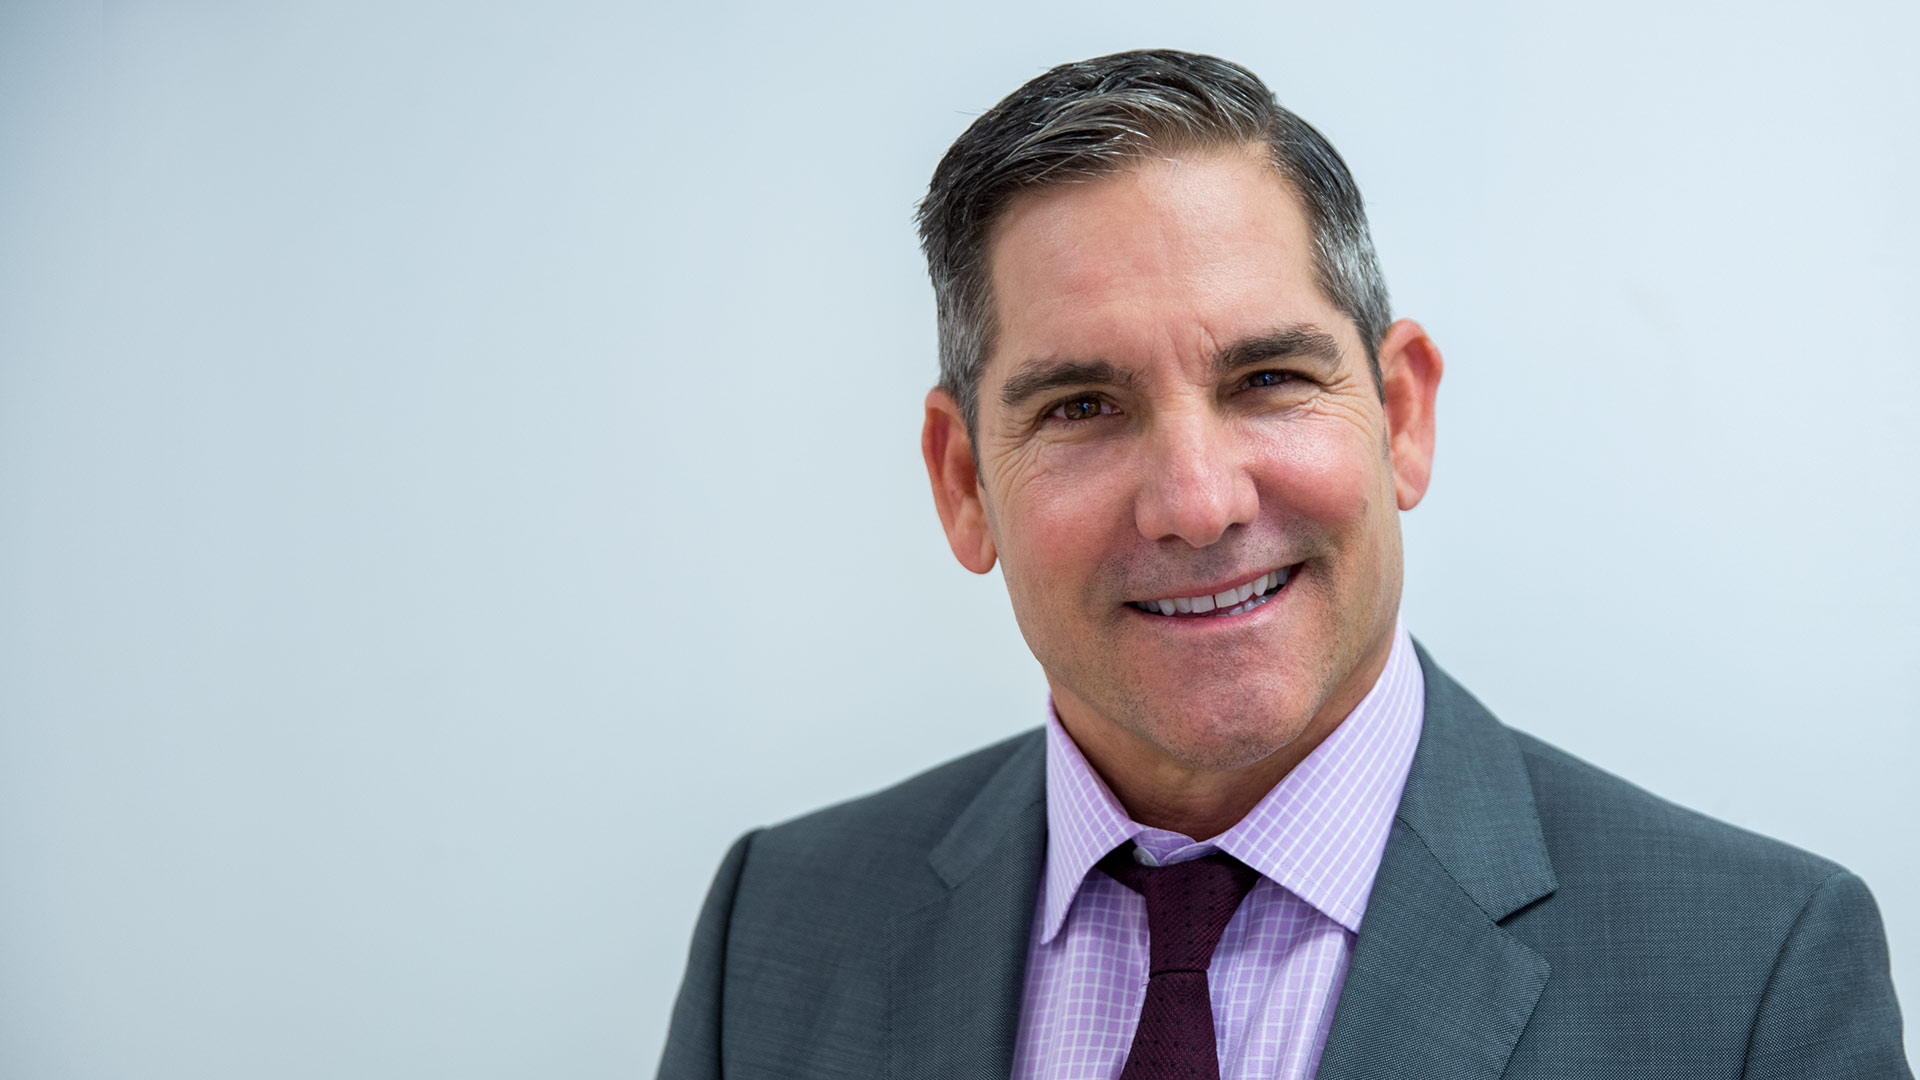 The real reason Grant Cardone isn't for everyone